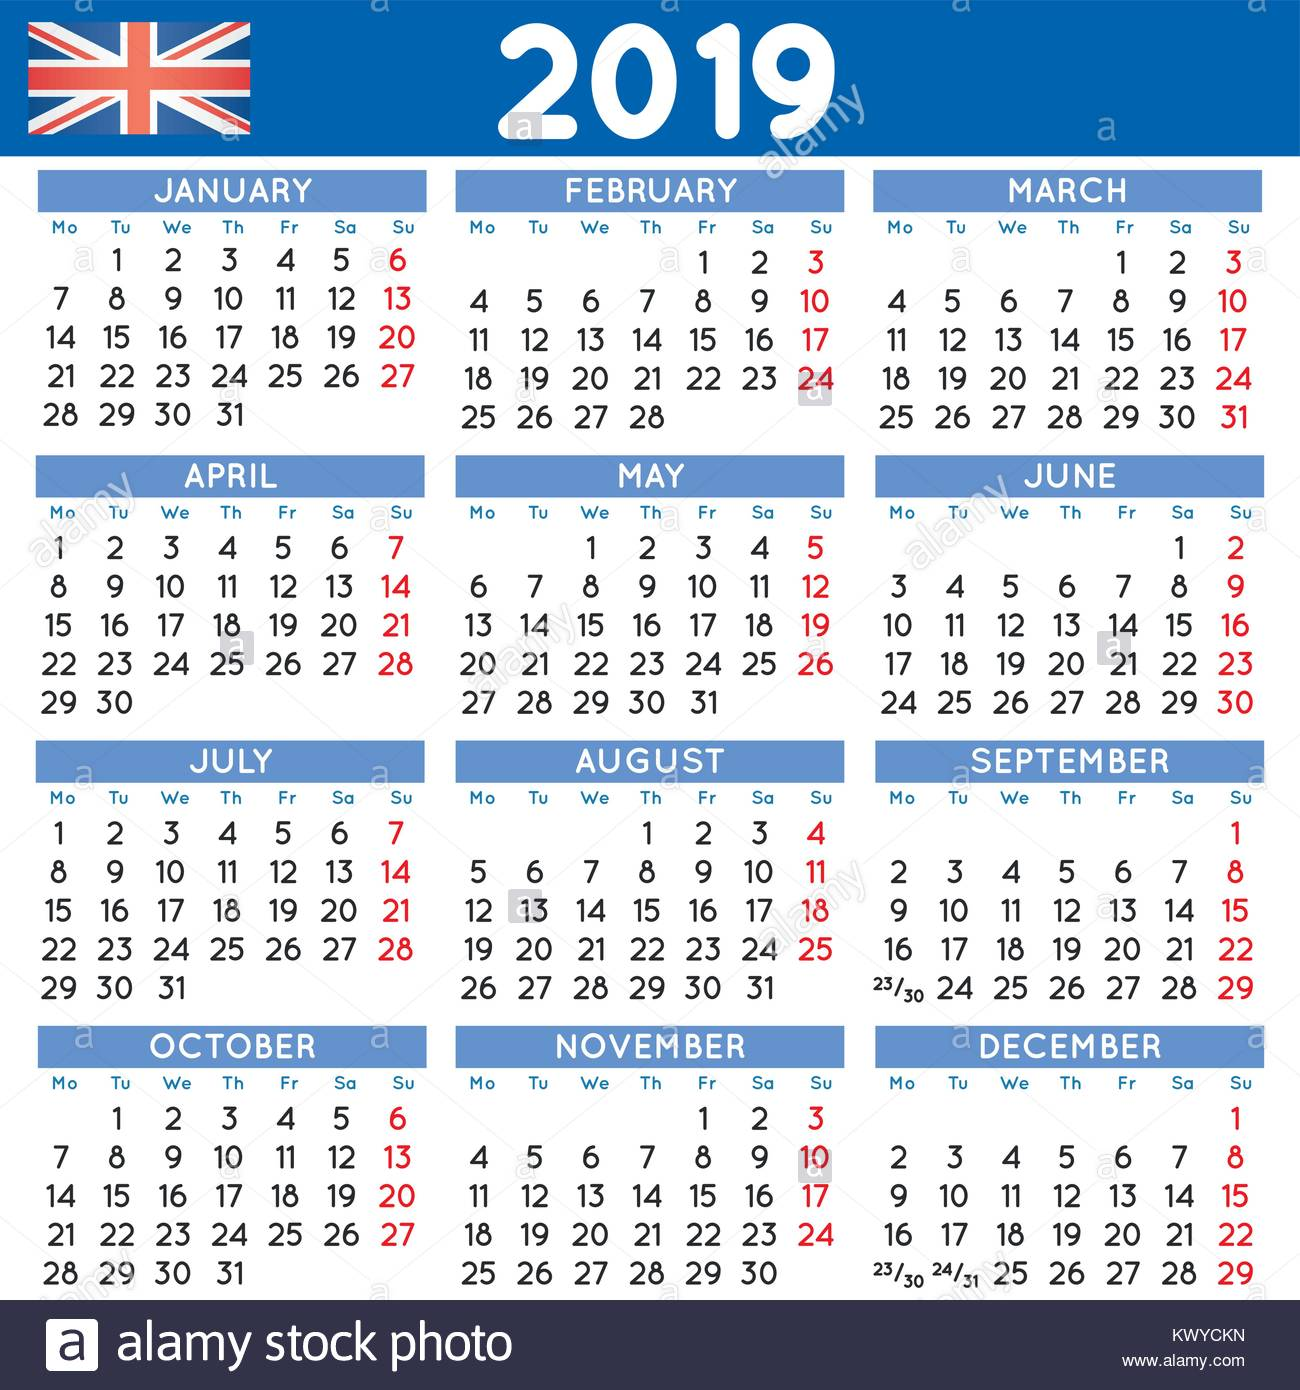 Year Calendar 2019 Uk 2019 elegant squared calendar english UK. Year 2019 calendar Stock